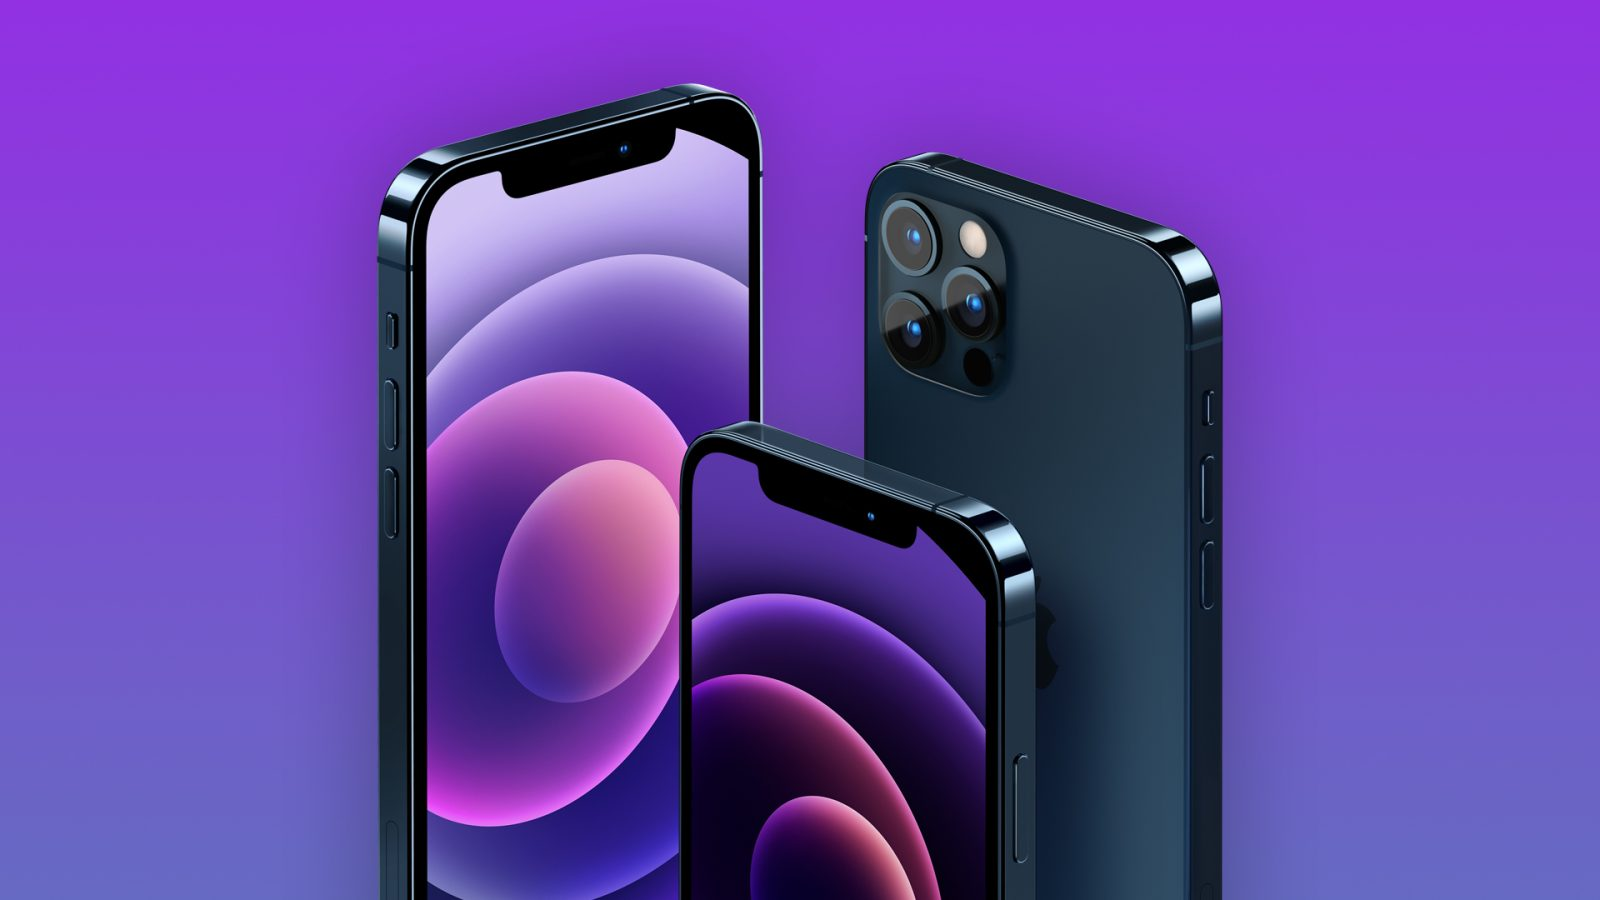 Download The New Purple Iphone 12 Wallpaper For Your Devices Right Here 9to5mac